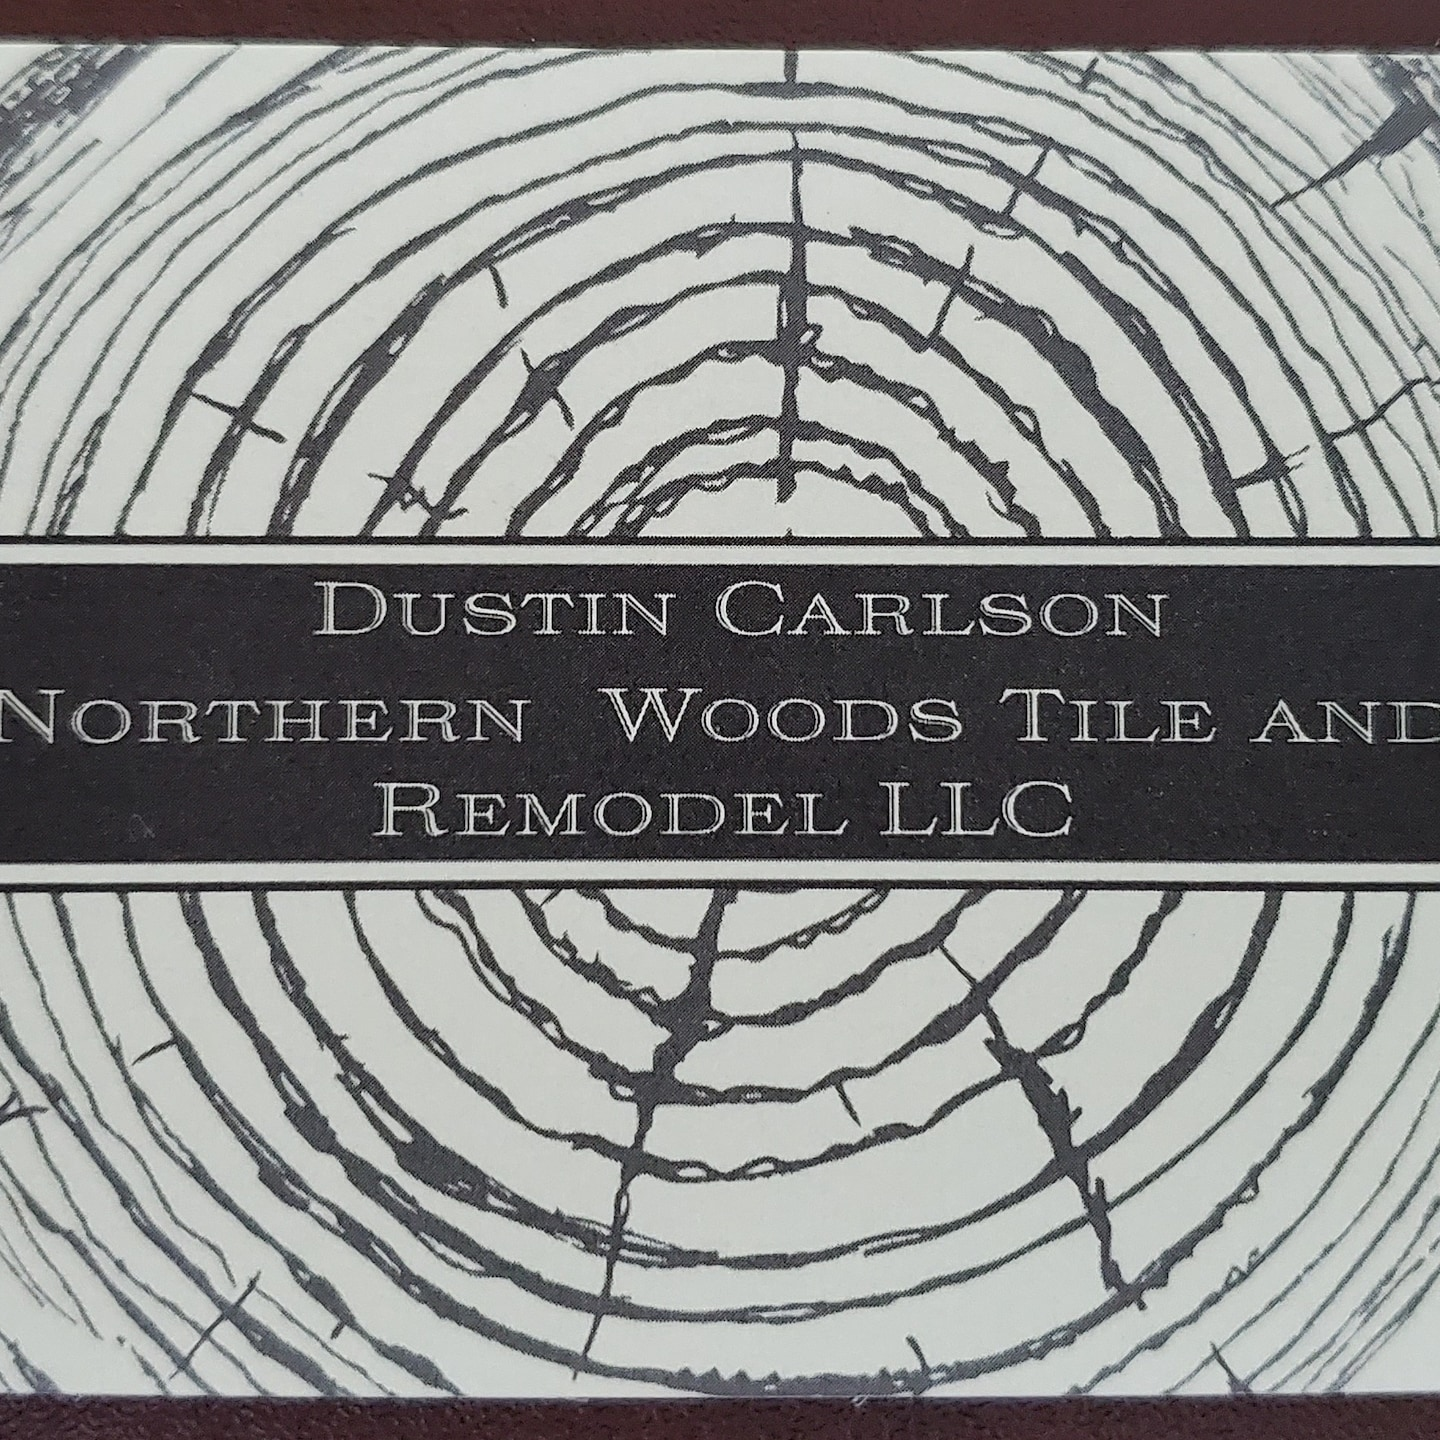 Northern Woods Tile and Remodel logo